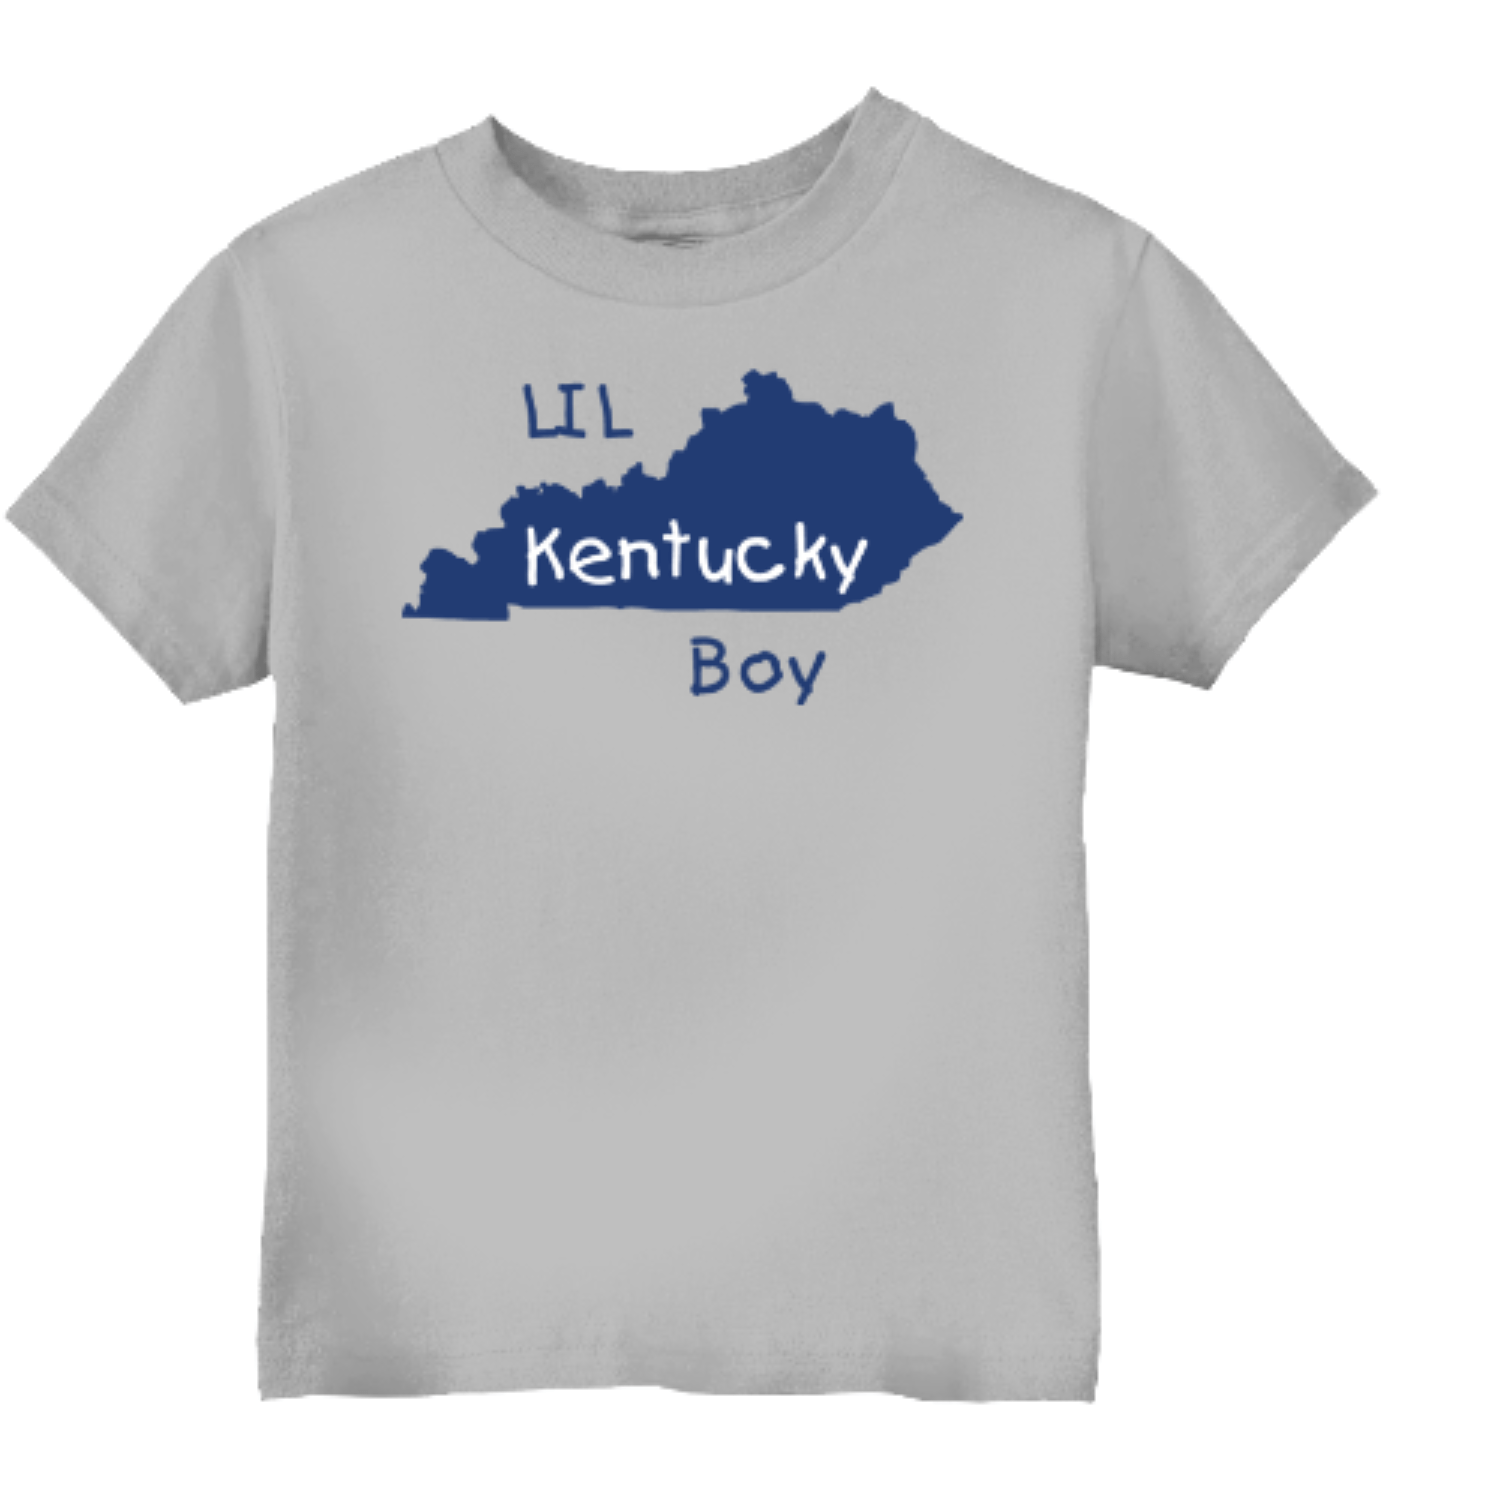 Lil Kentucky Boy Toddler T Shirt Gray Rabbit Skins Toddler T Shirt